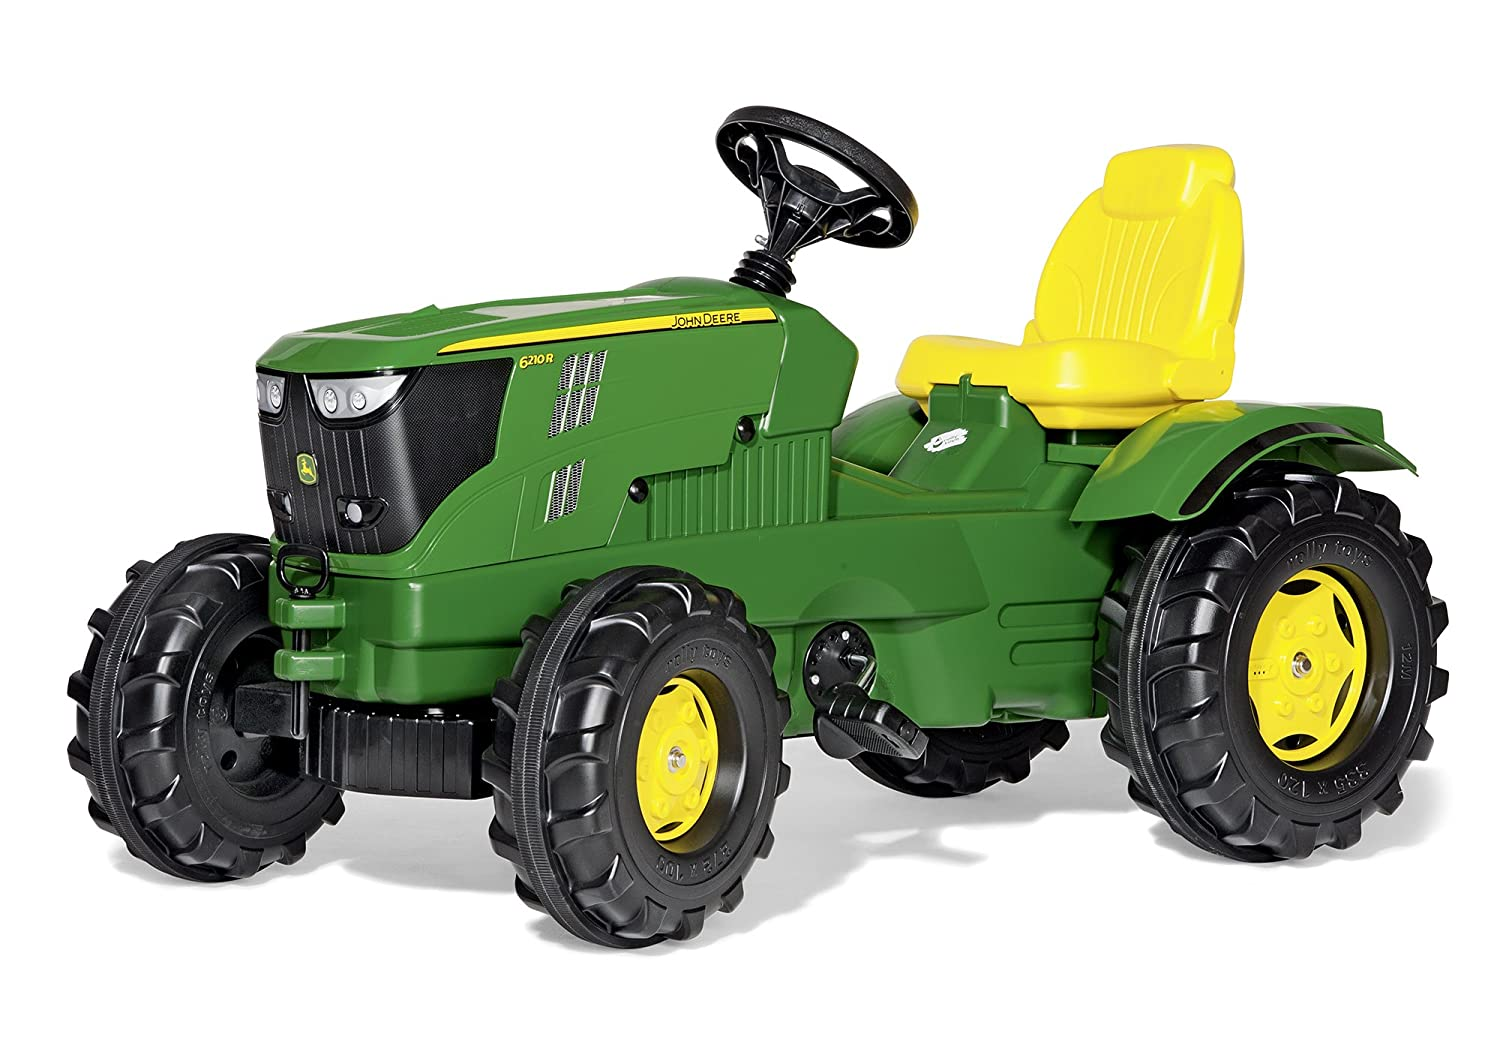 rolly toys john deere trettraktor vergleich bestseller auf 1 blick. Black Bedroom Furniture Sets. Home Design Ideas